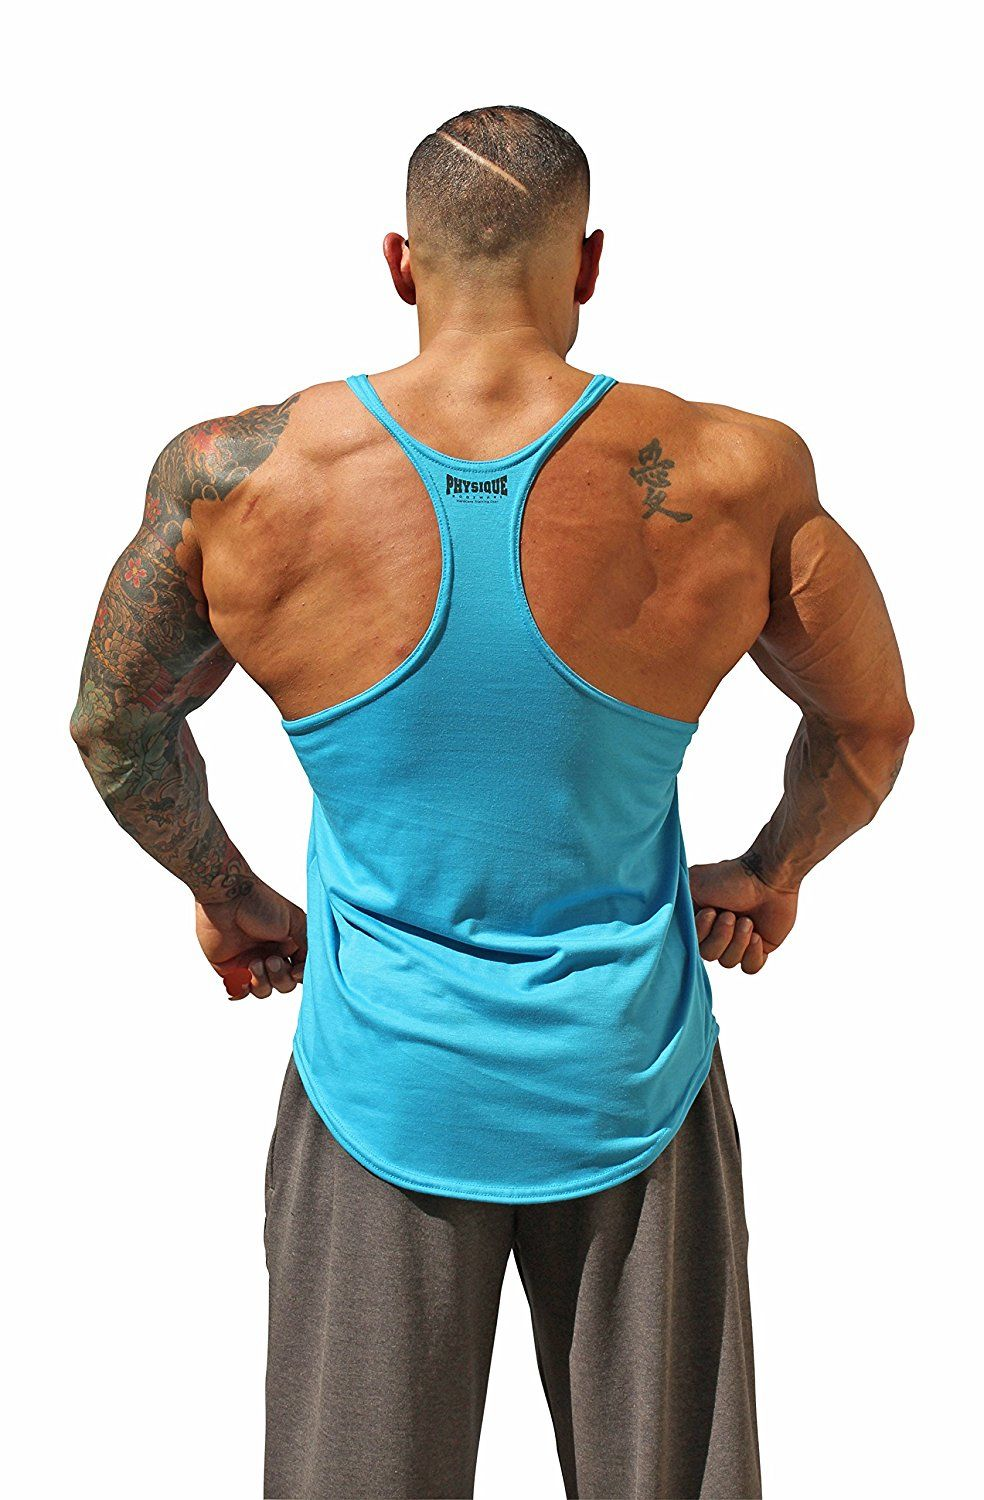 0f6dd93a1fb129 Physique Bodyware Mens Blank Y Back Stringer Tank Top. Built In America  (Small